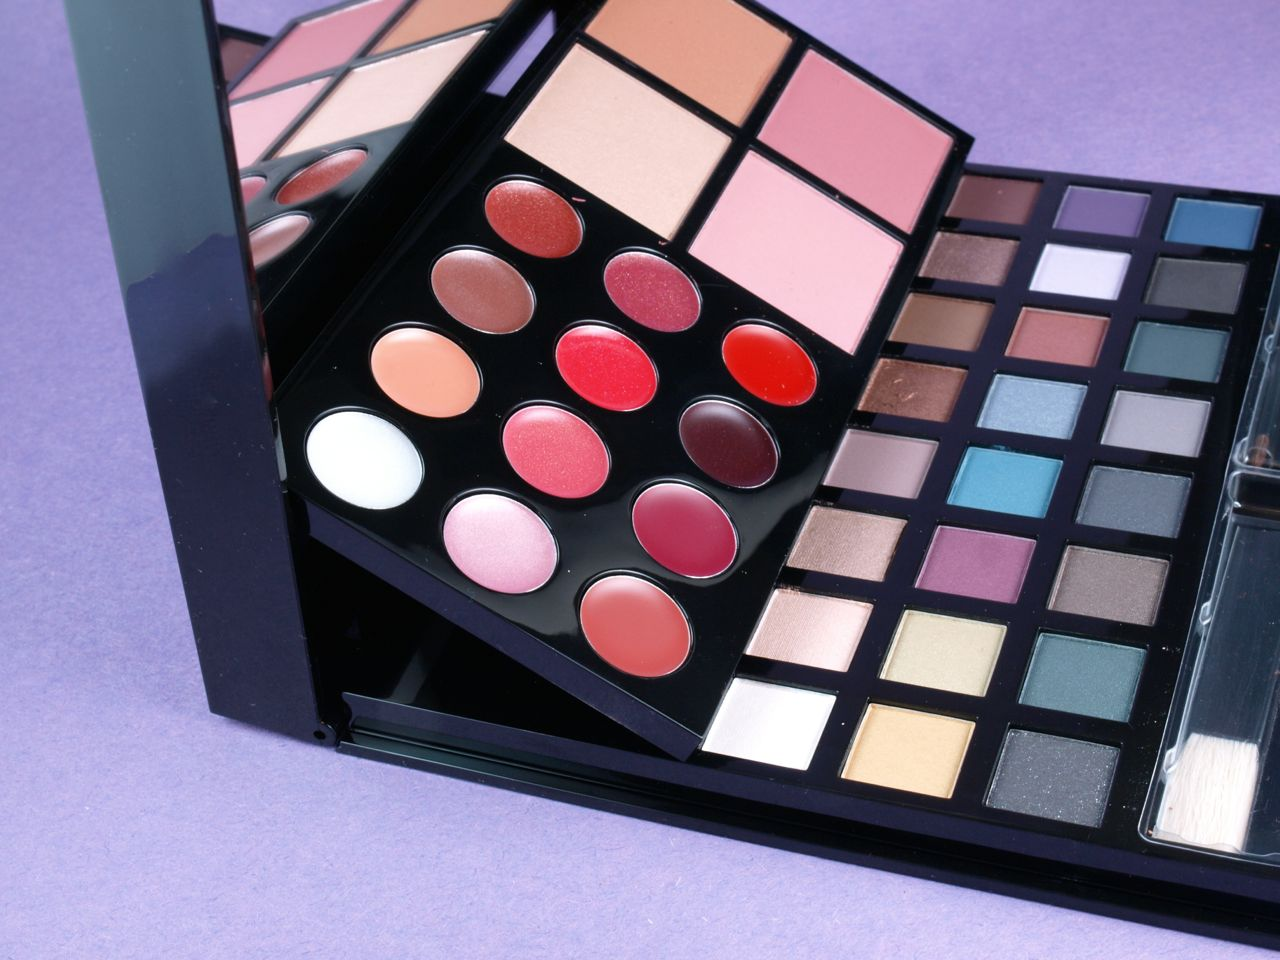 Avon Holiday 2014 Makeup Studio Palette: Review and Swatches